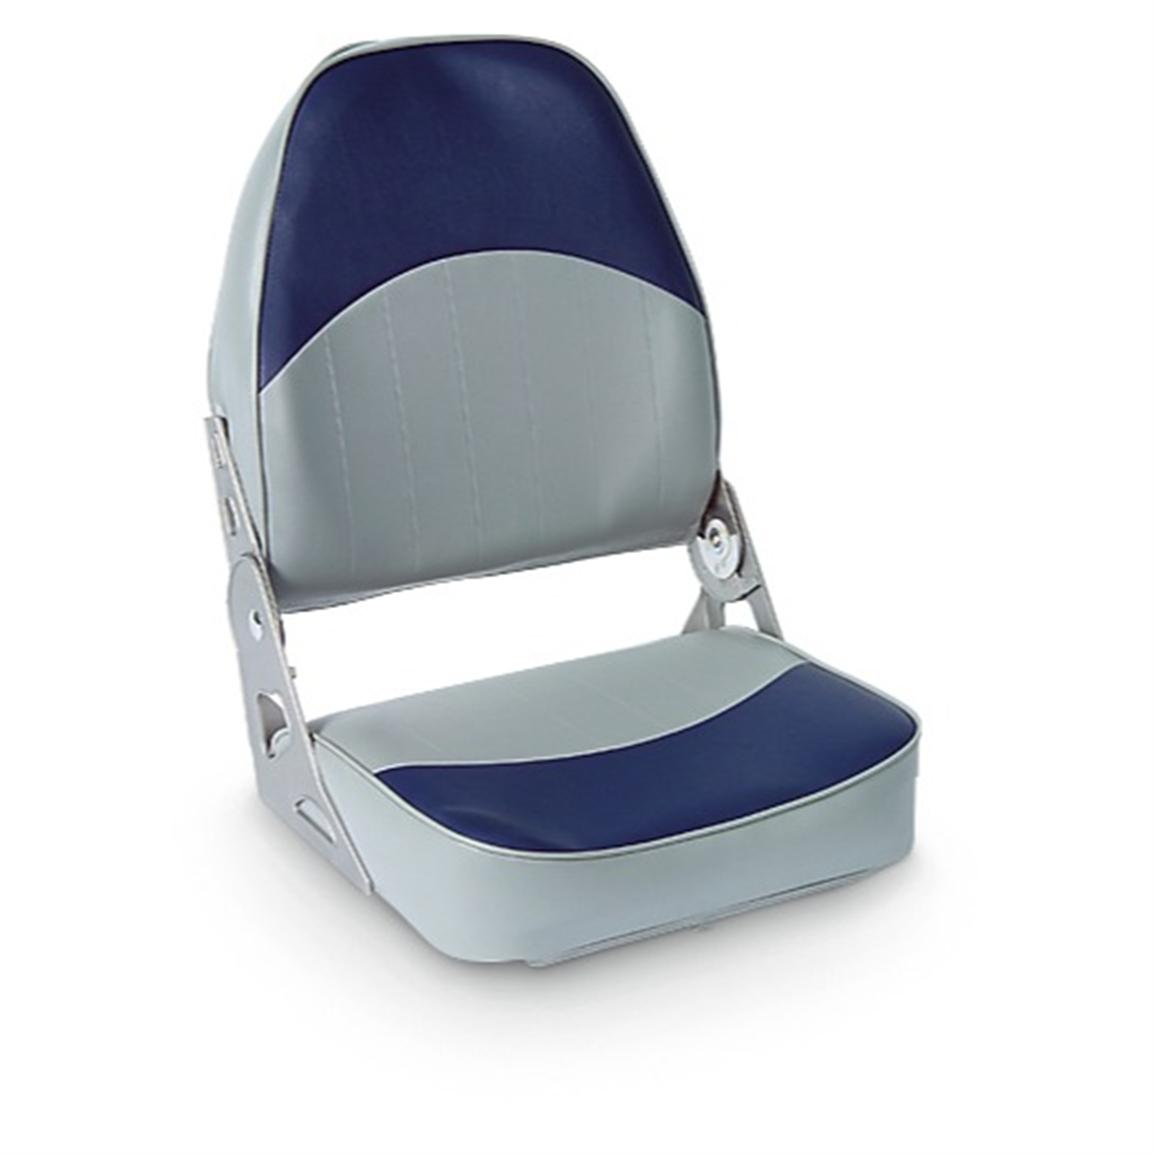 High-back Boat Seat, Navy / Gray